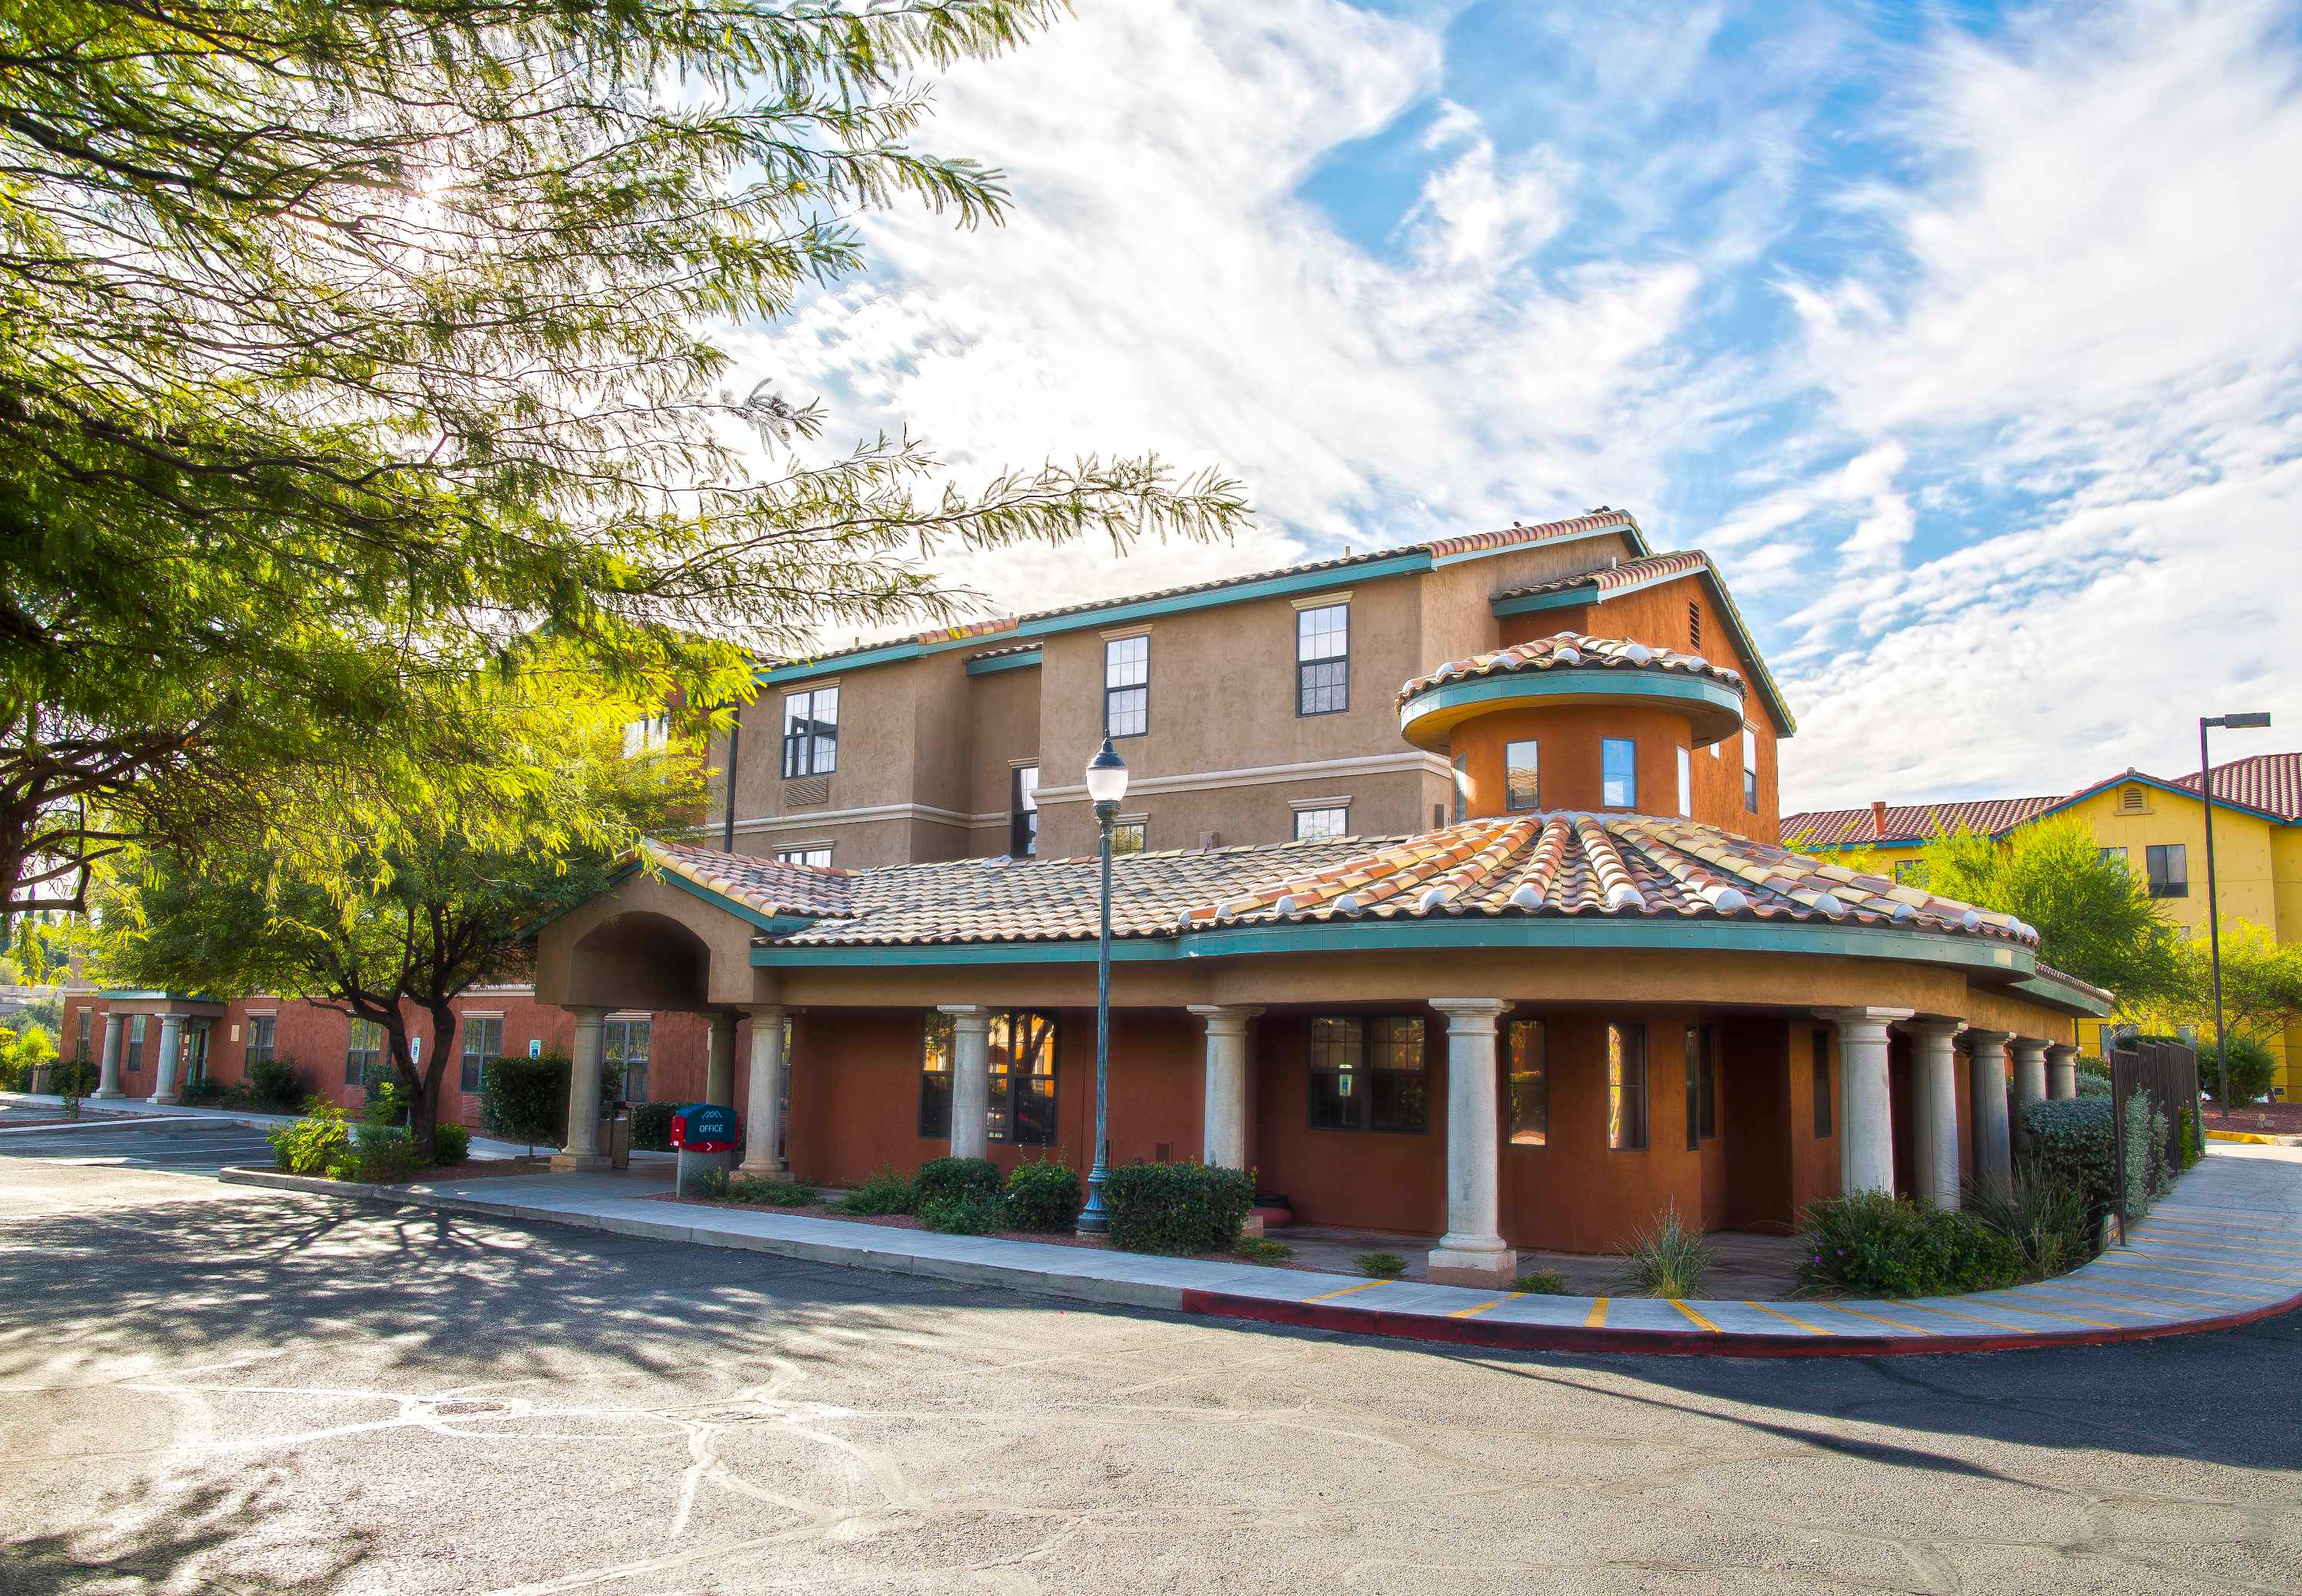 TownePlace Suites by Marriott Tucson image 1